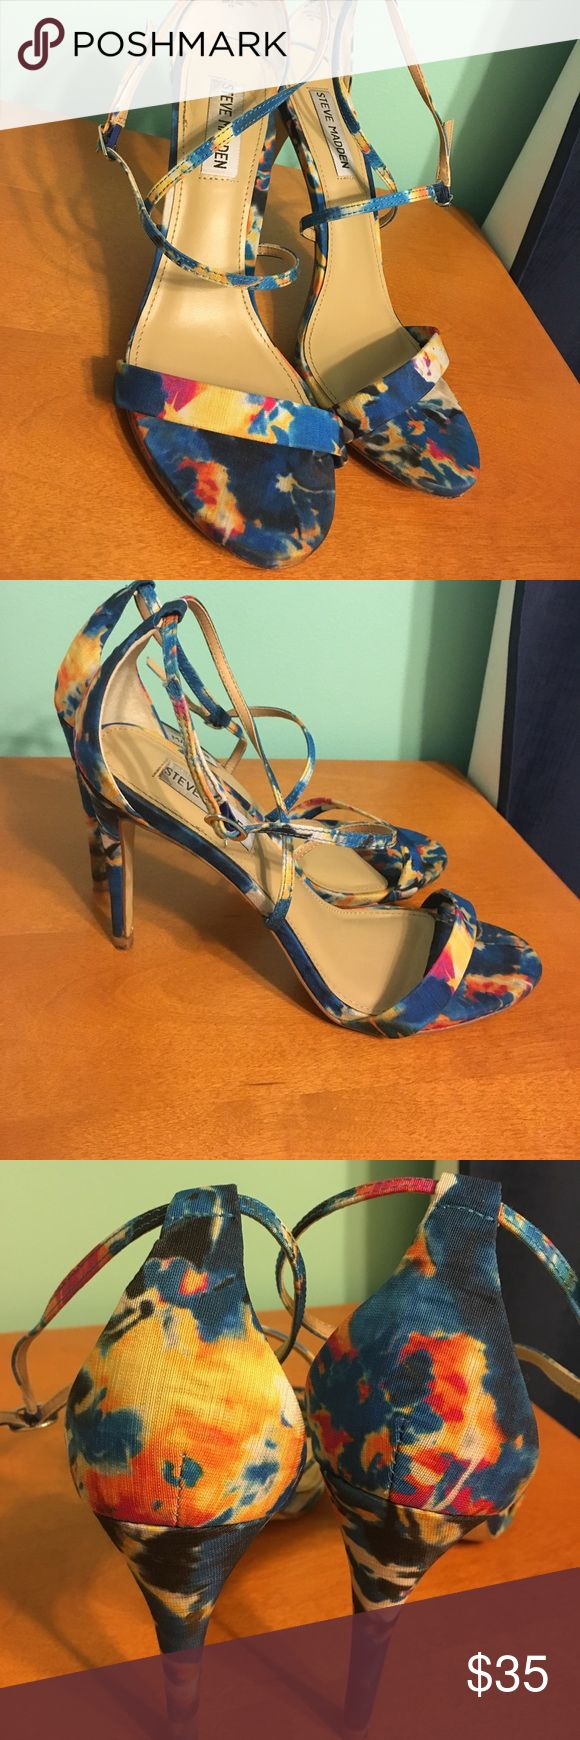 Steven Madden Strappy Floral Heels-8.5 Good condition! Worn once to a wedding. Steven Madden Floral Blue, yellow, pink, orange, and white strappy heels. Size 8.5!! Very comfortable and in good condition. Steve Madden Shoes Heels